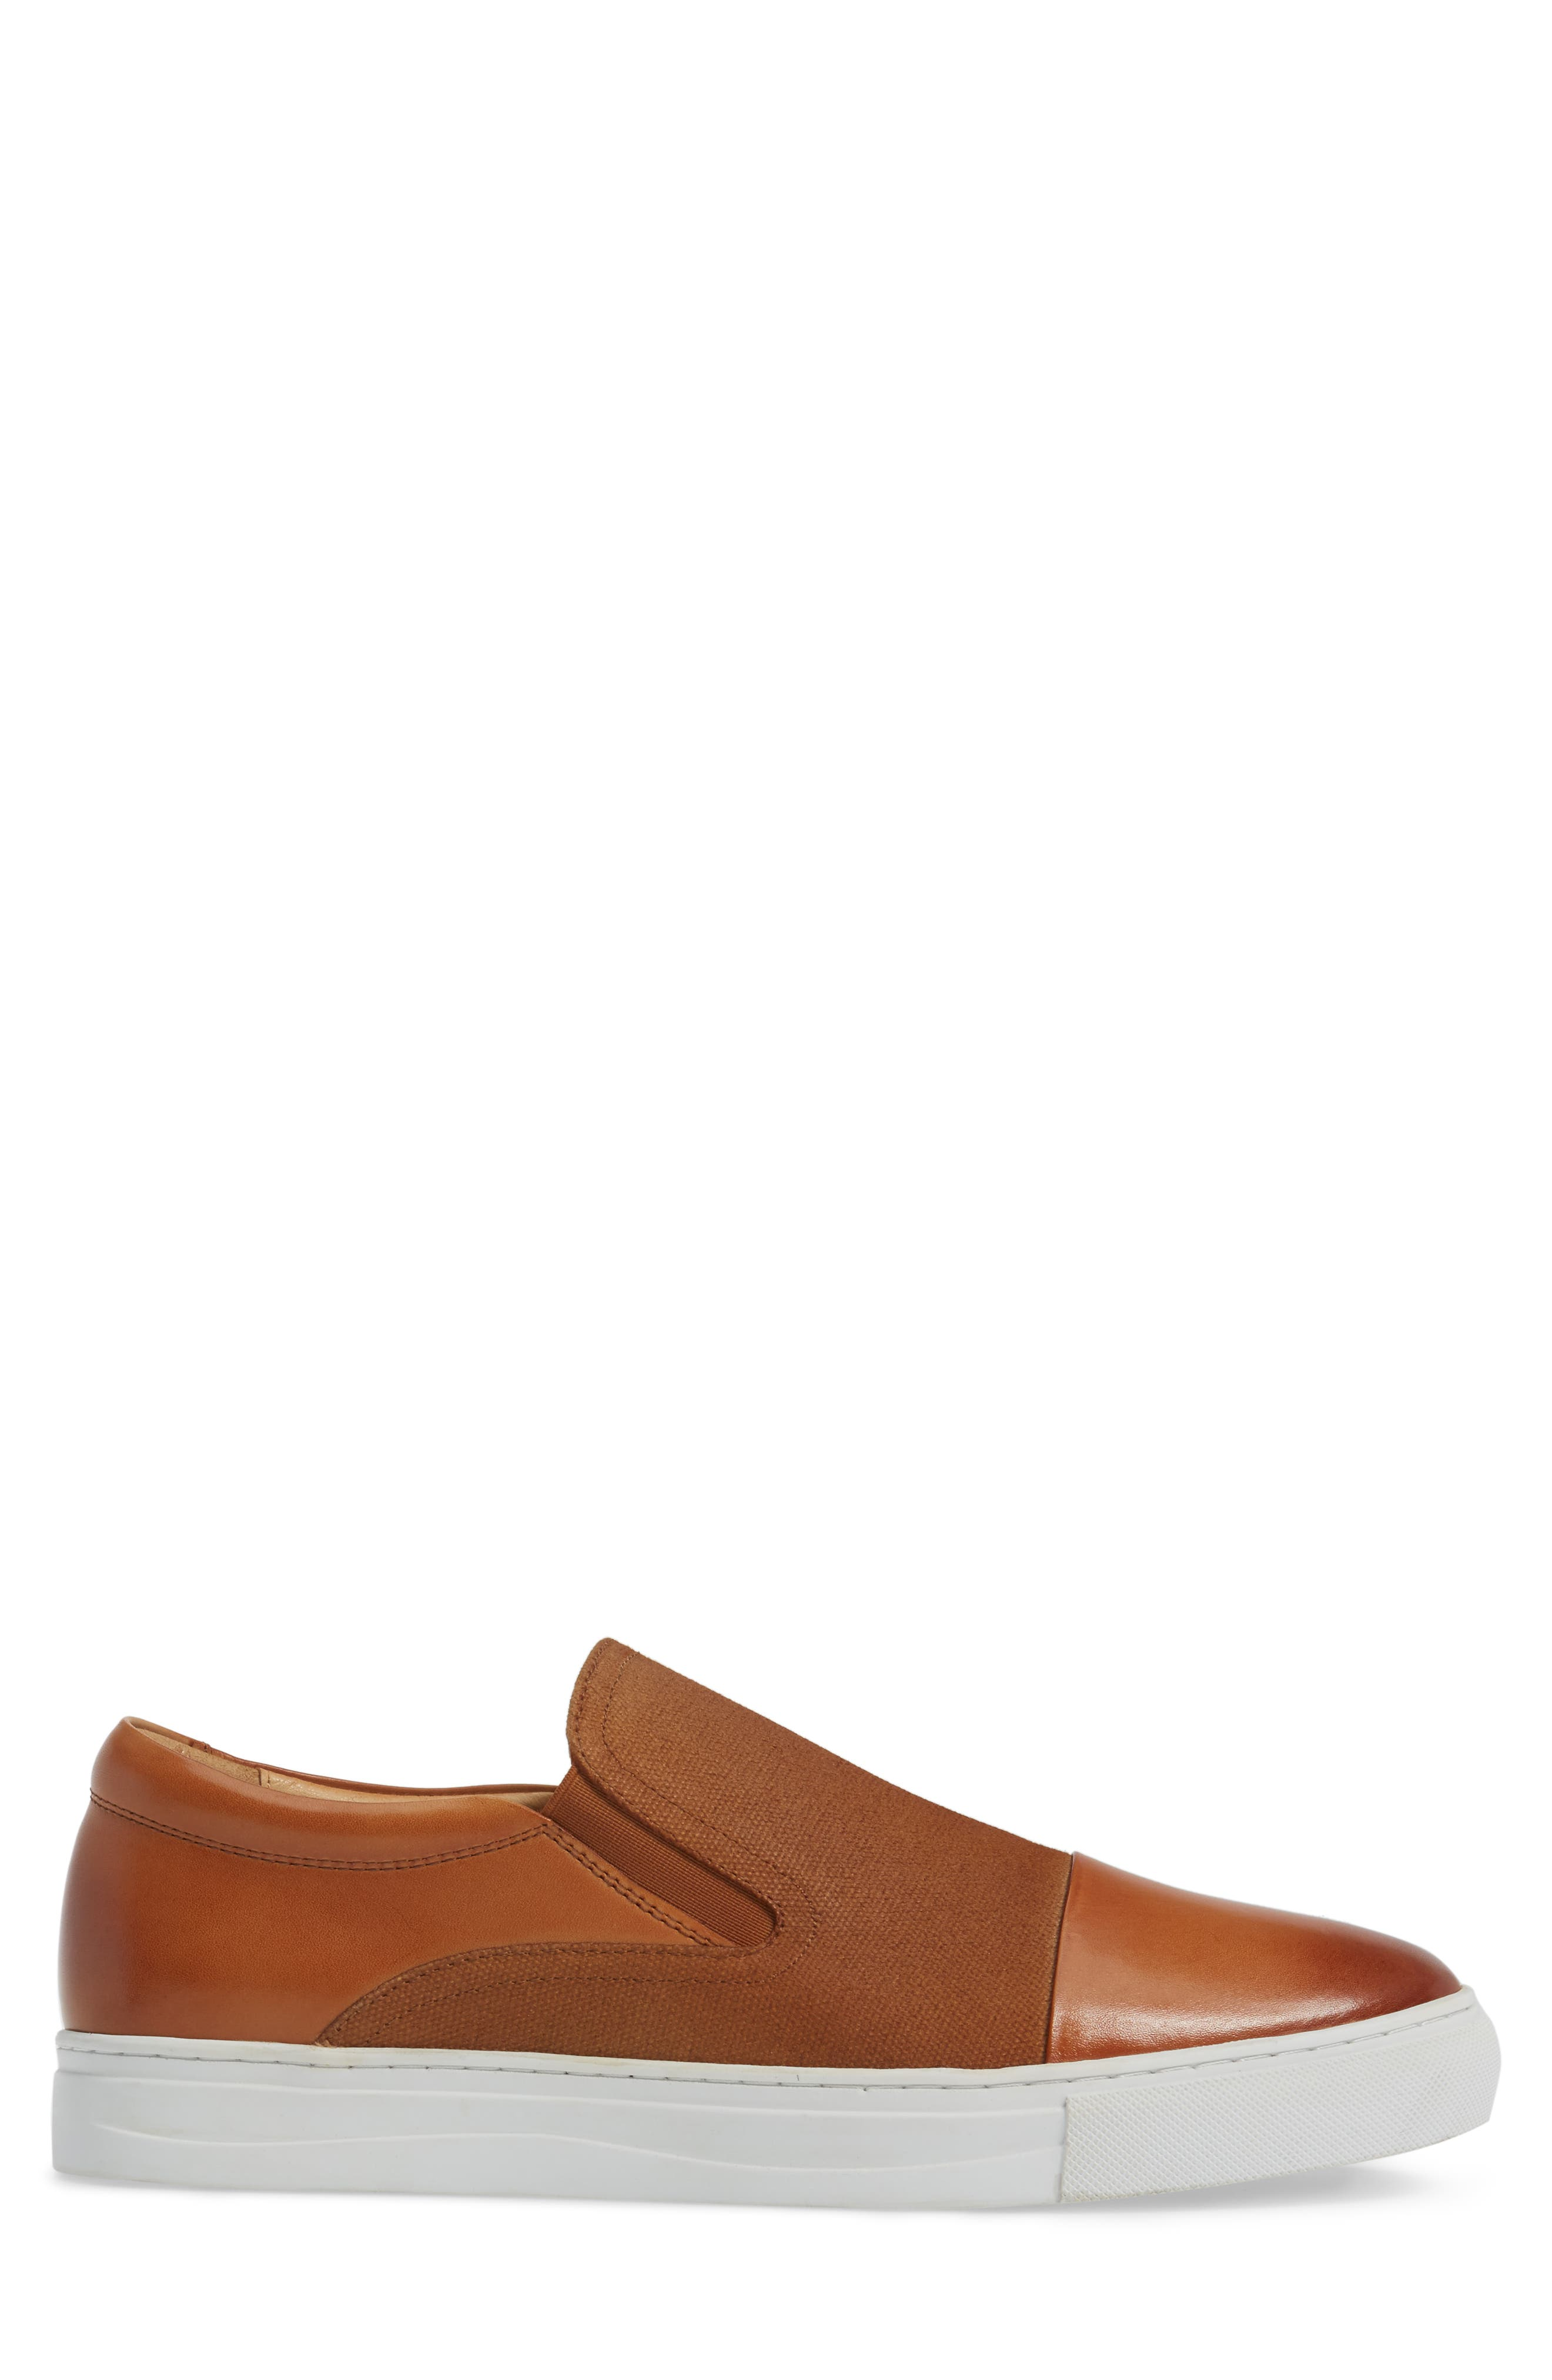 Gants Slip-On,                             Alternate thumbnail 3, color,                             211